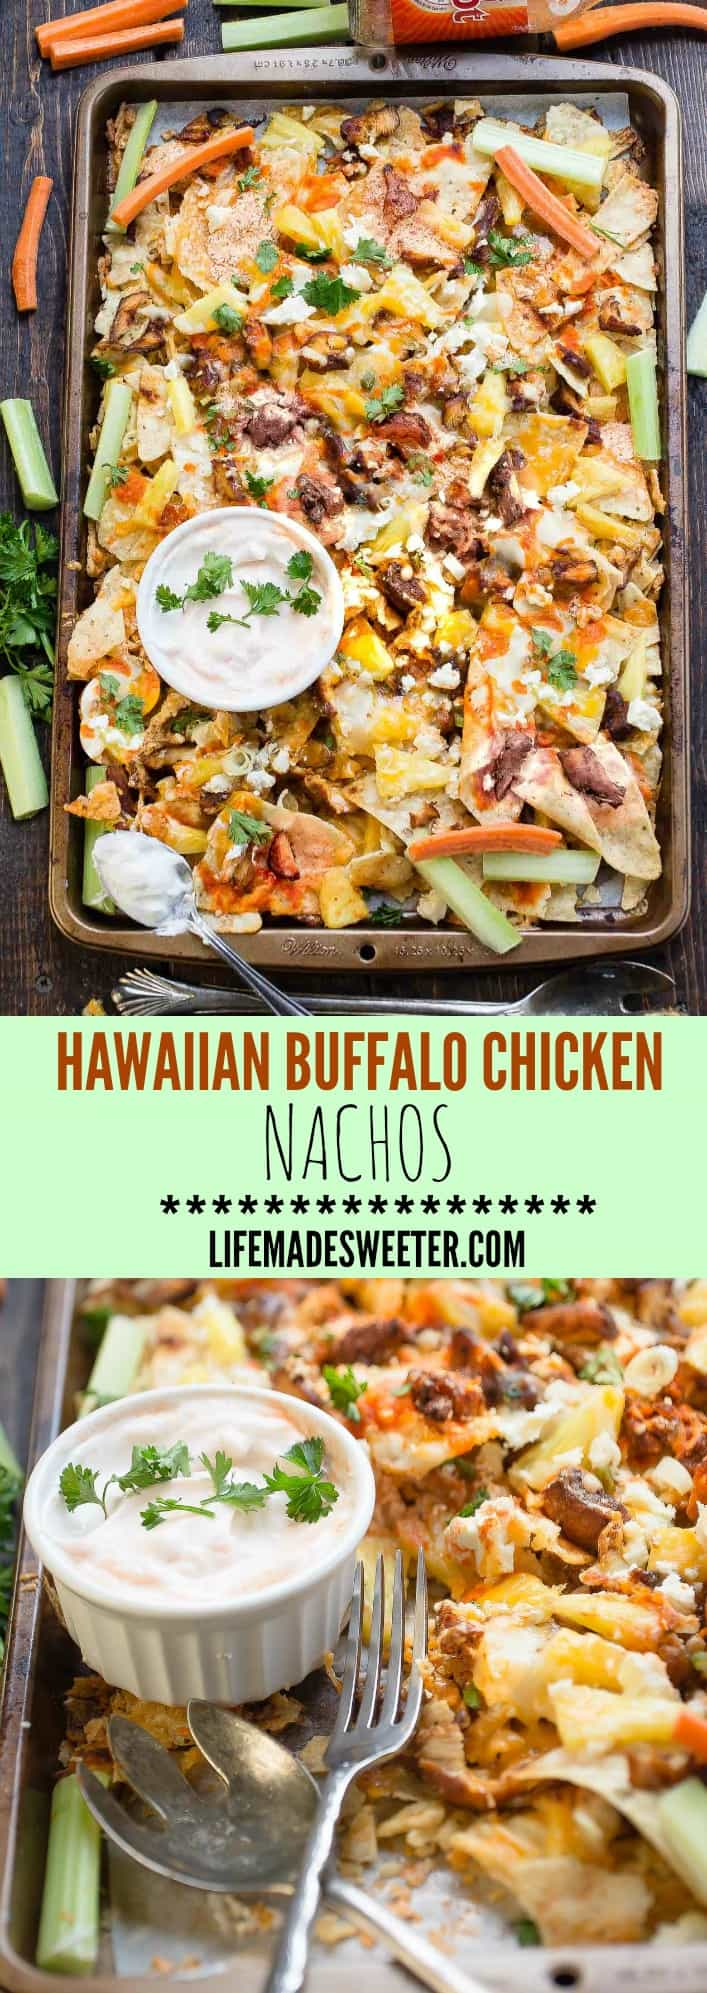 Hawaiian Buffalo Chicken NachosHawaiian Buffalo Chicken Nachos